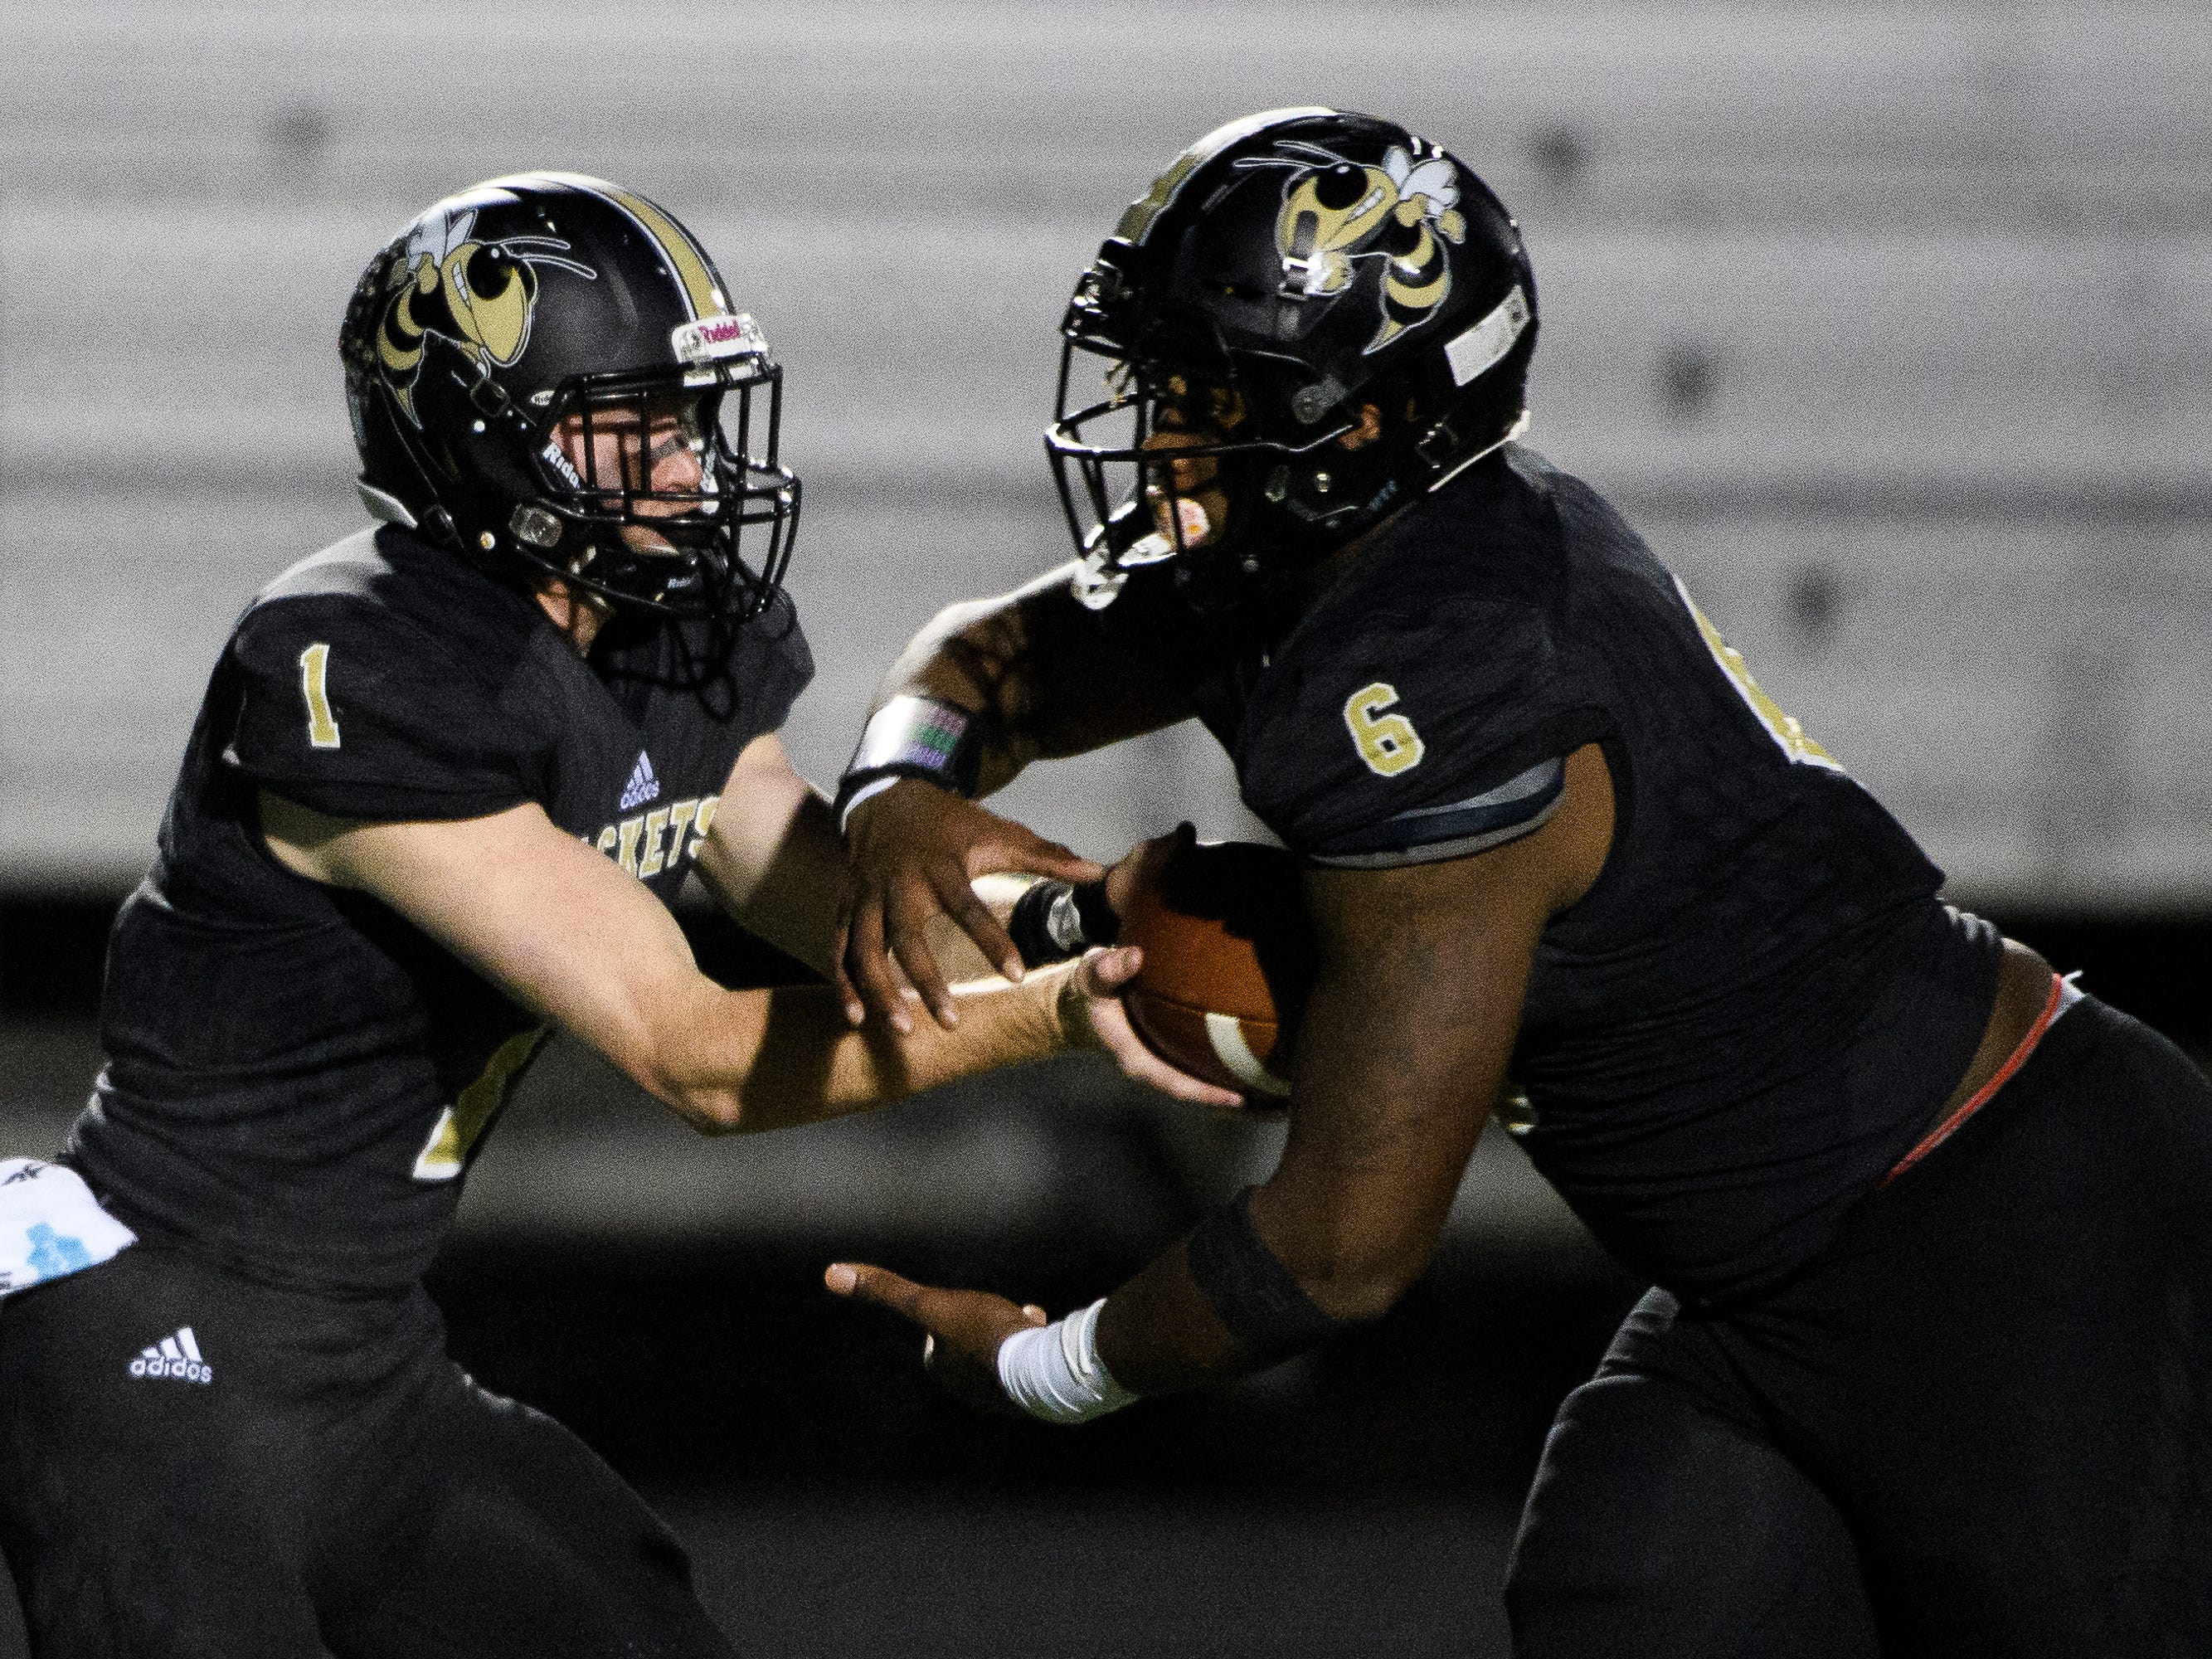 T.L. Hanna's Alex Meredith (1) hands the ball off to Zacch Pickens (6) during their game against Northwestern on Friday, Nov. 16, 2018.